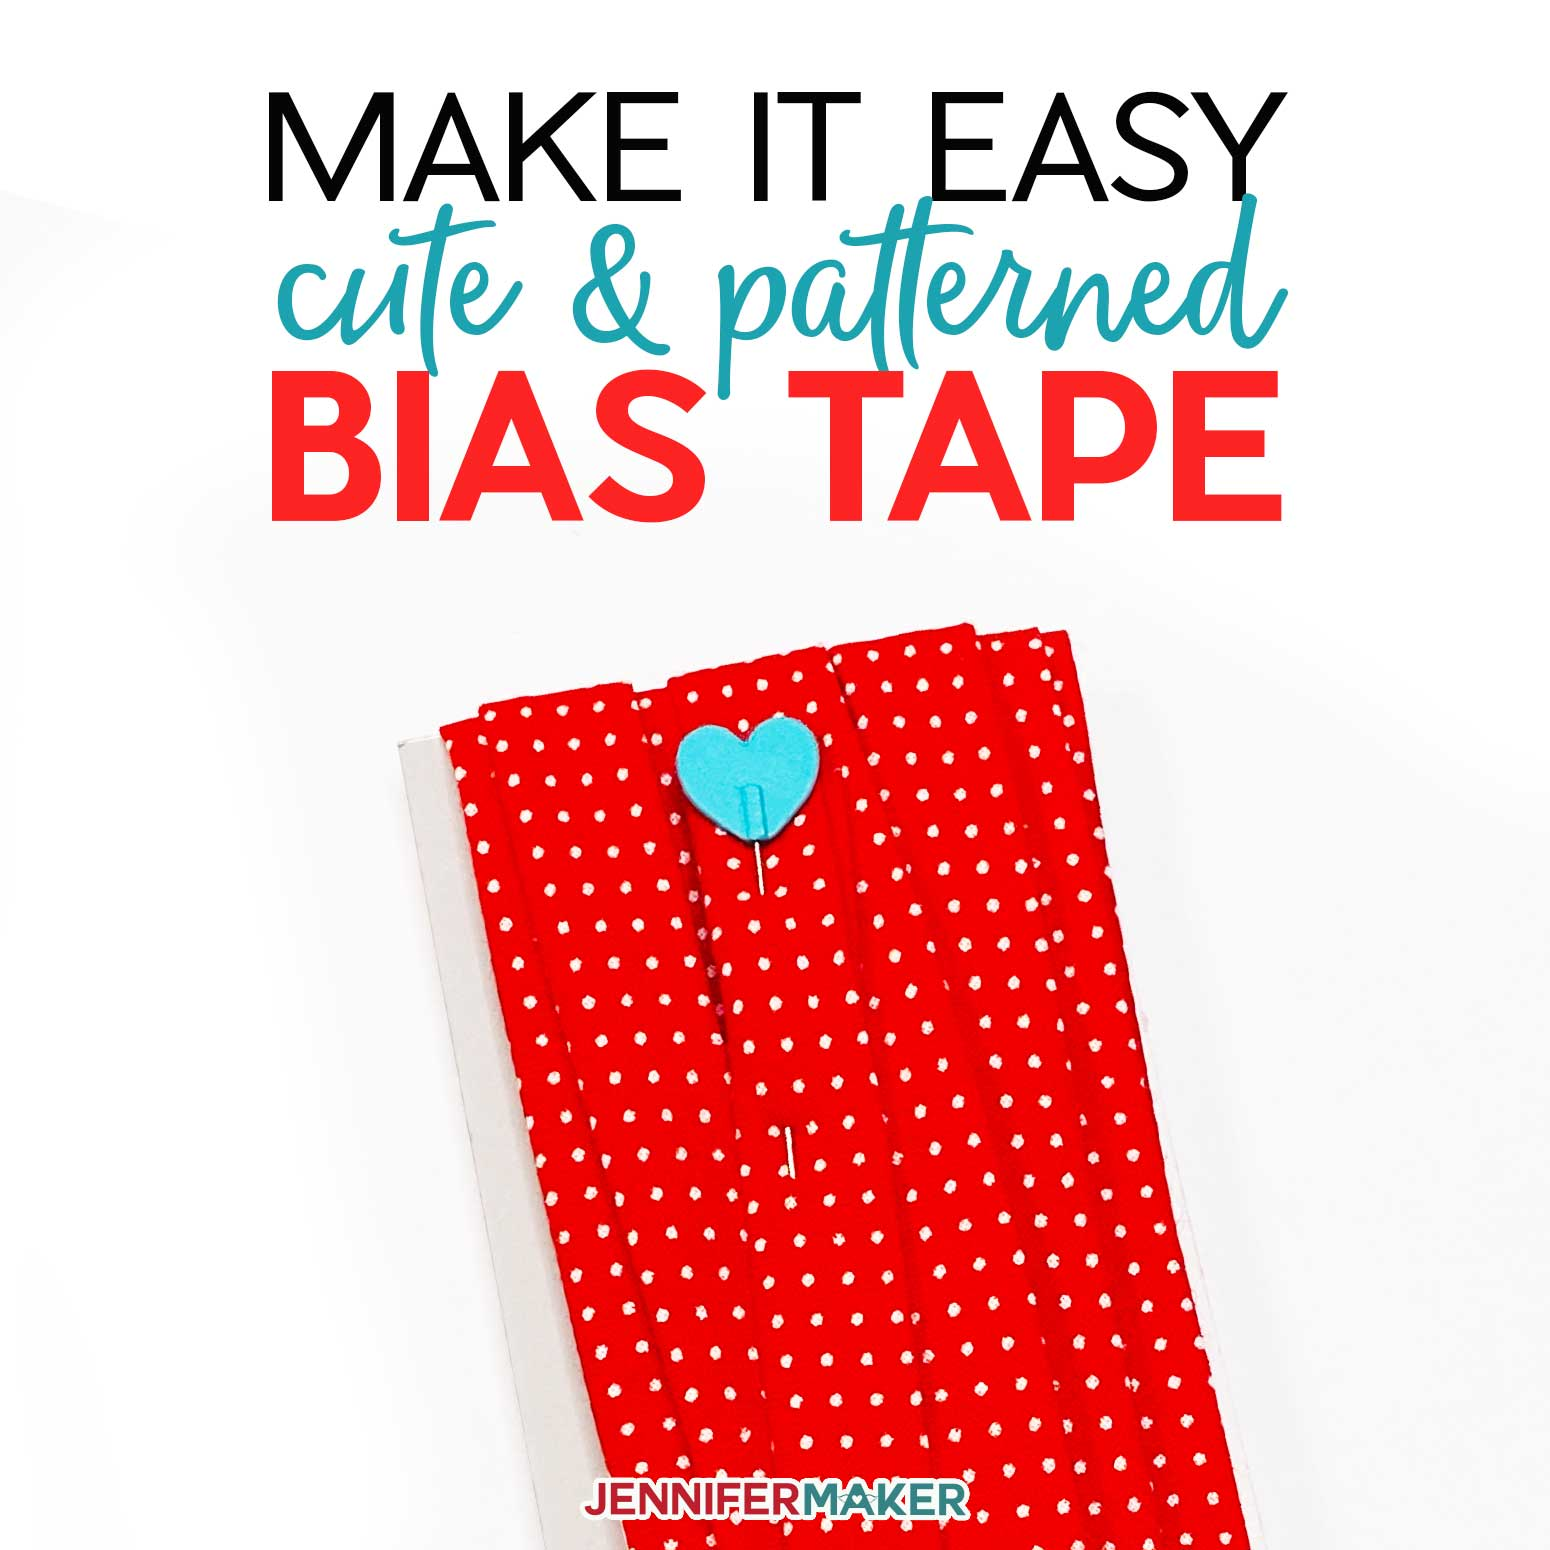 Make cute bias tape at home with any color or pattern the easy way!